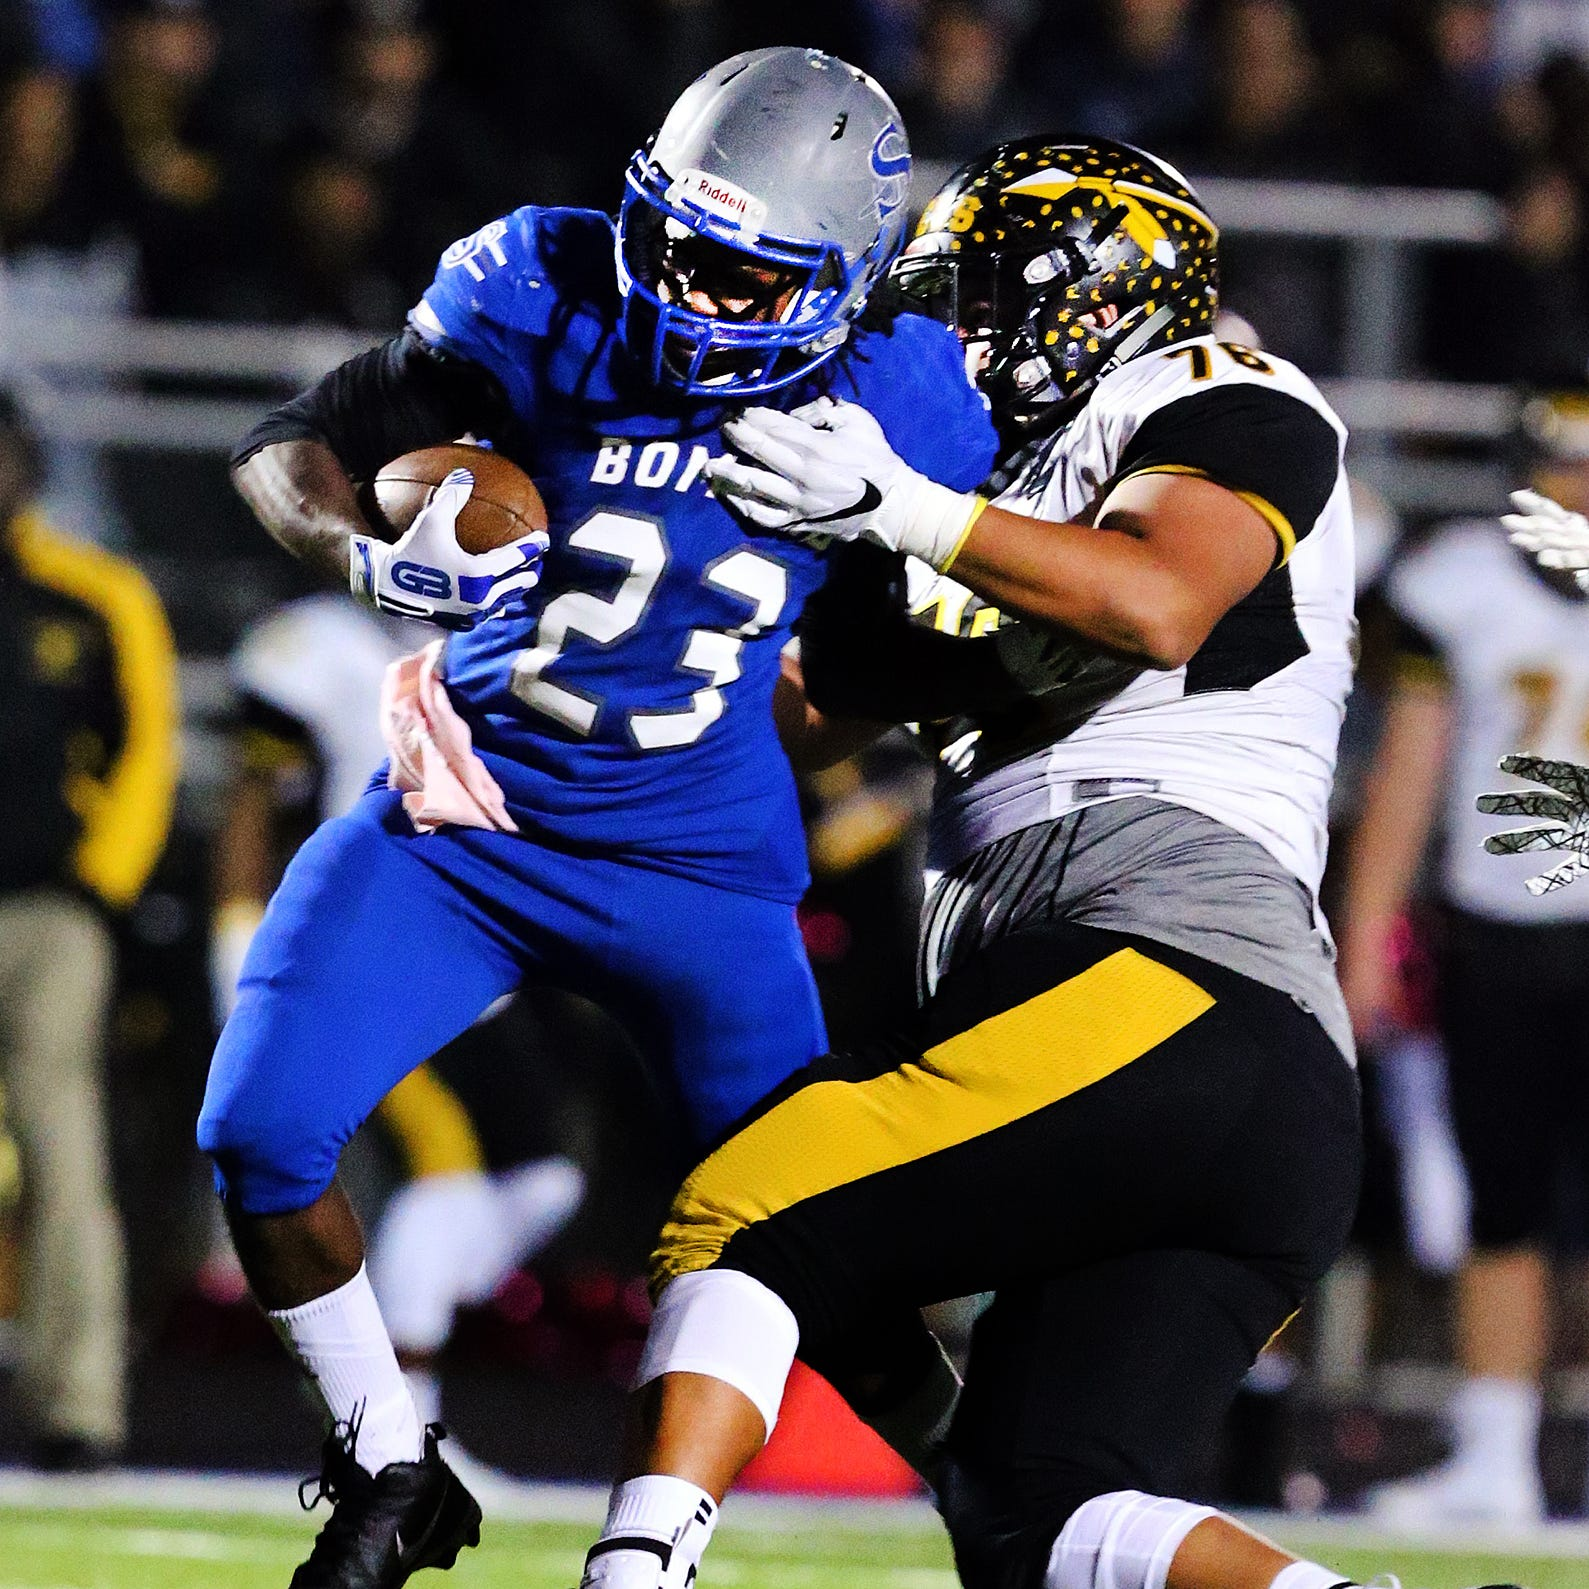 NJ football: Piscataway remains undefeated with win over Sayreville